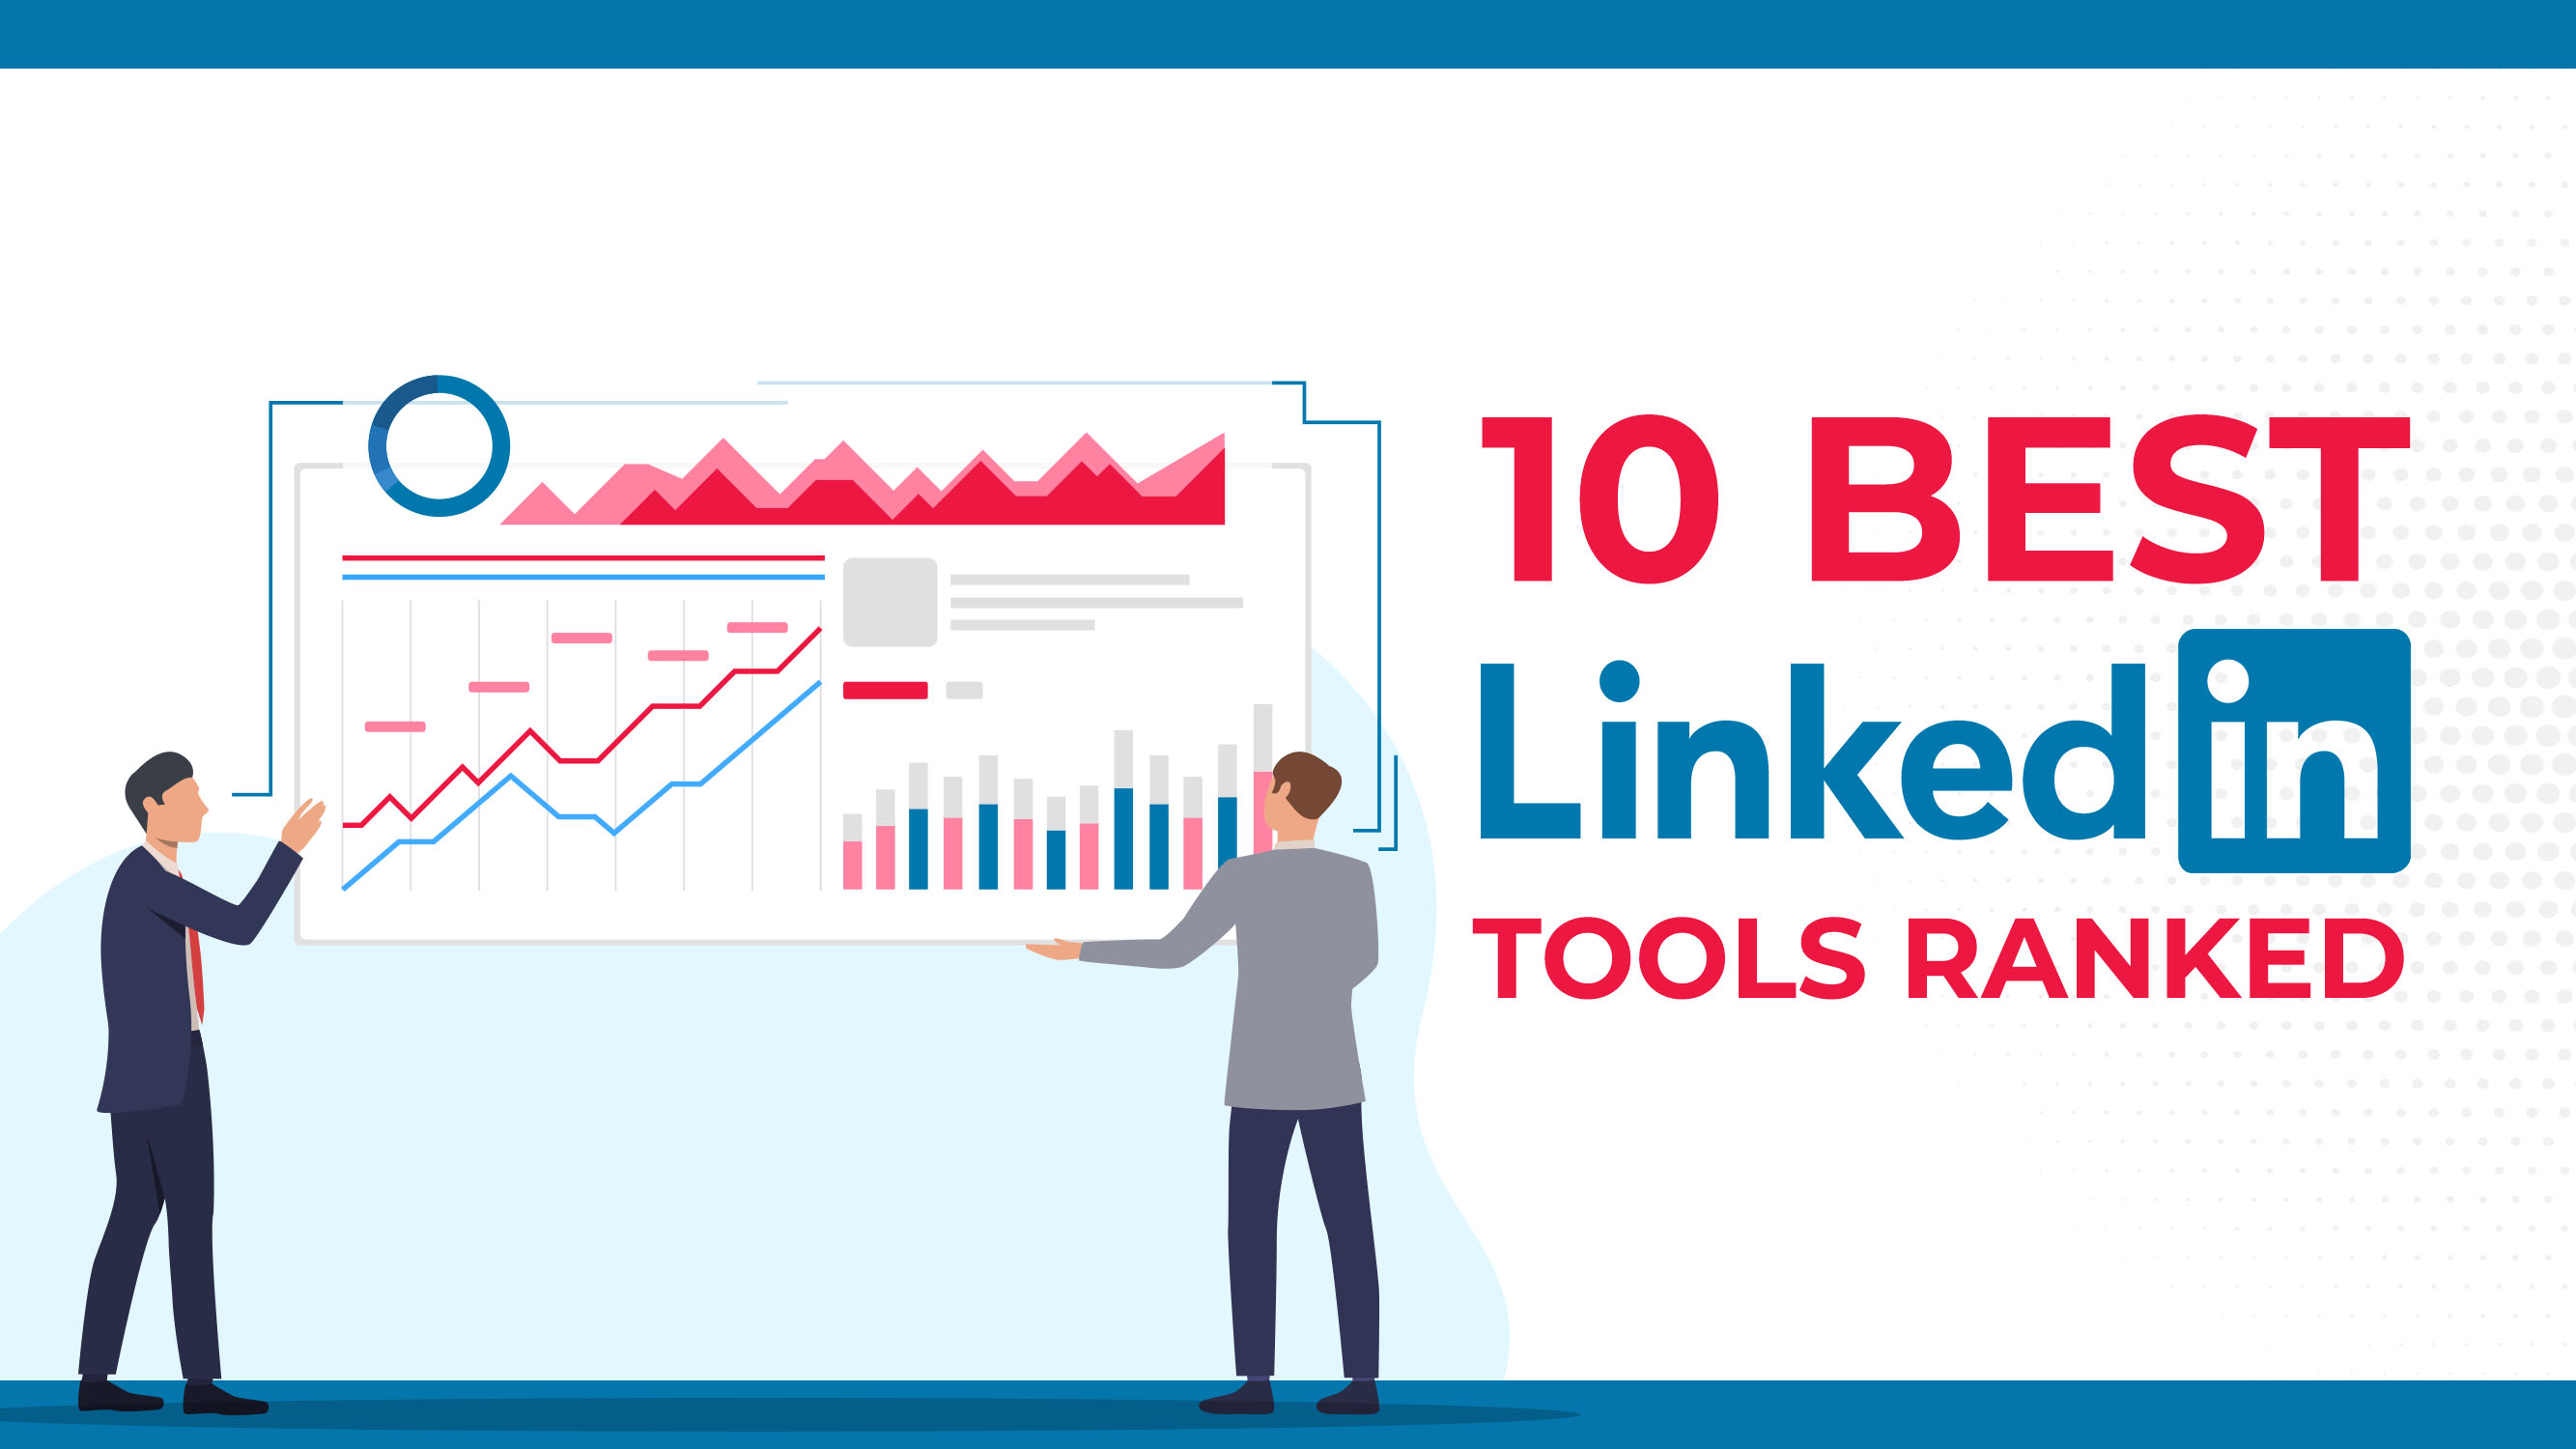 The 10 Best LinkedIn Tools, Ranked